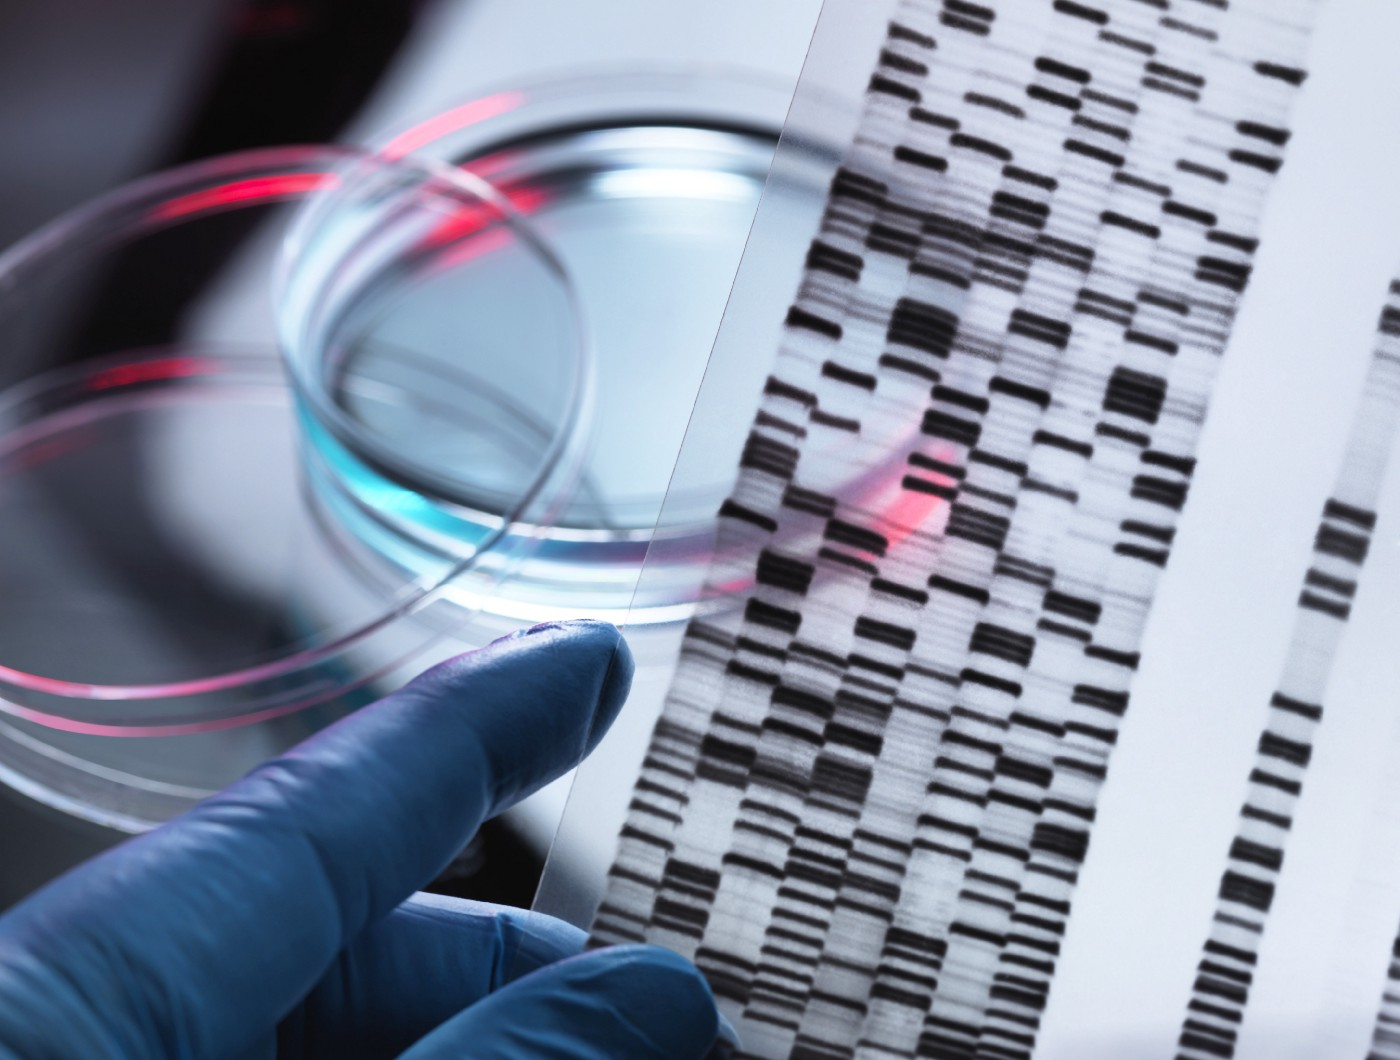 A close up of a gloved hand holding up a DNA autoradiogram next to a petri dish to illustrate genetic research.